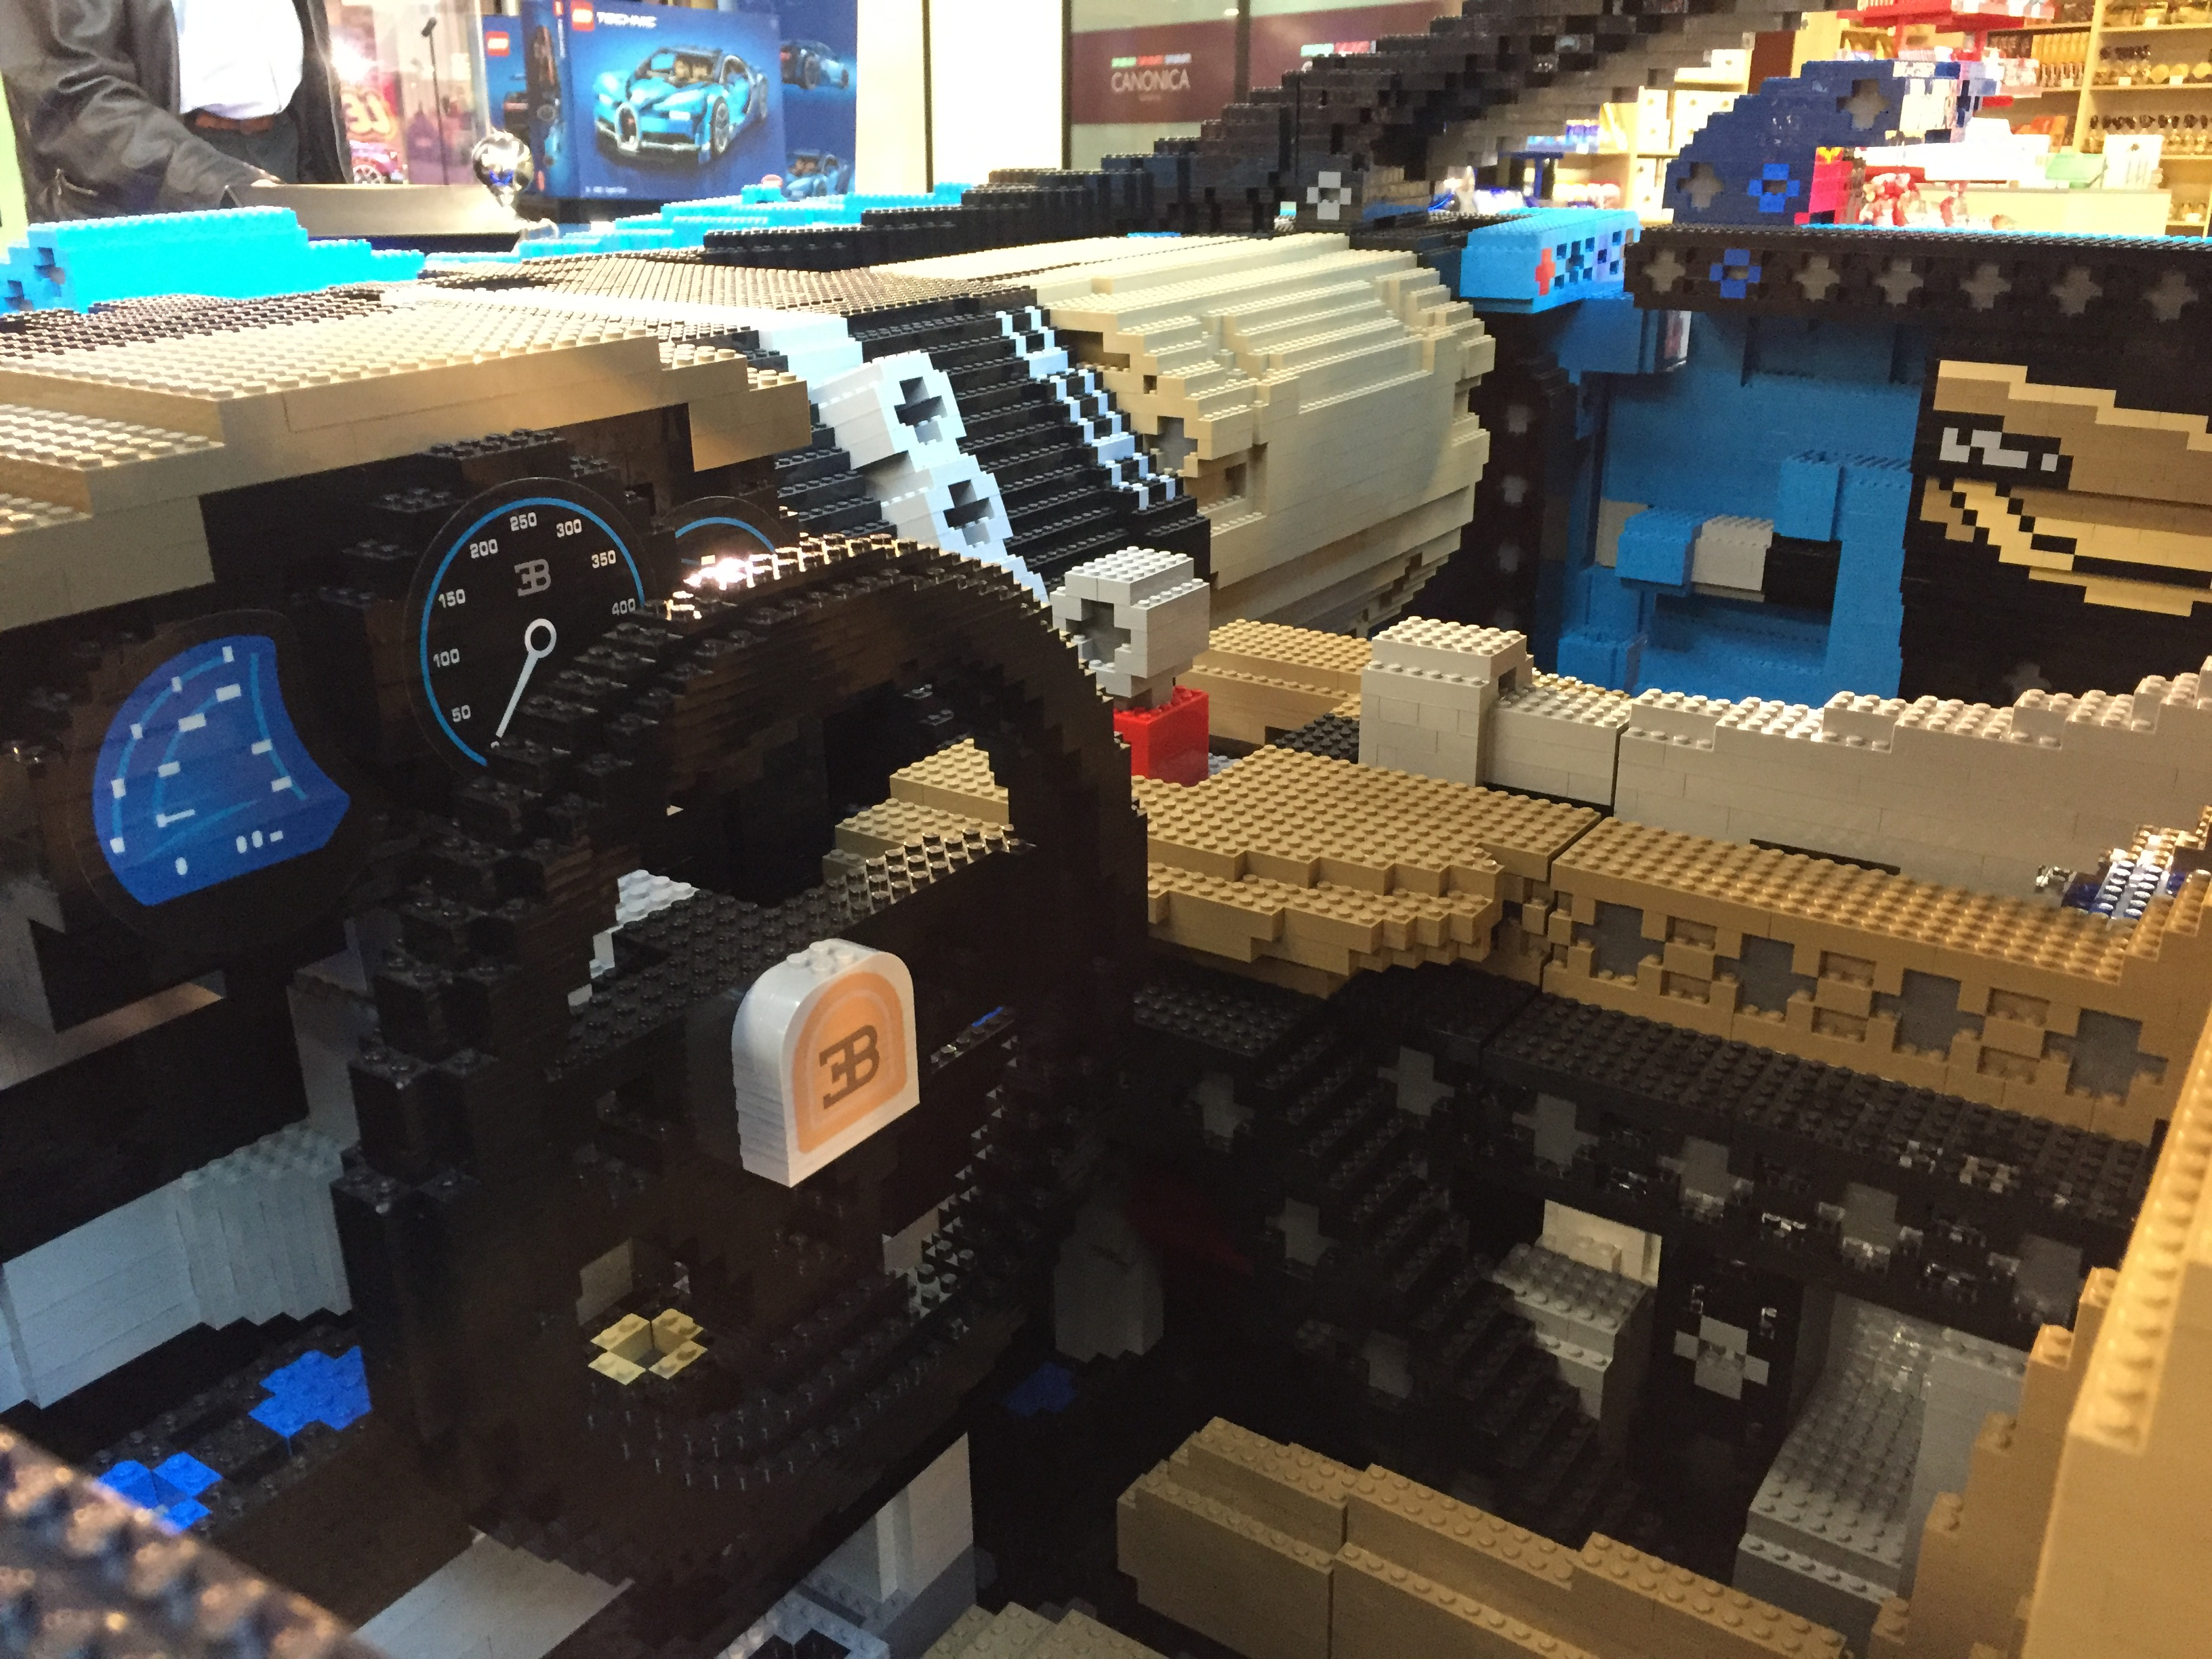 Inside the Lego Bugatti. Photo: Charles Riley/CNN